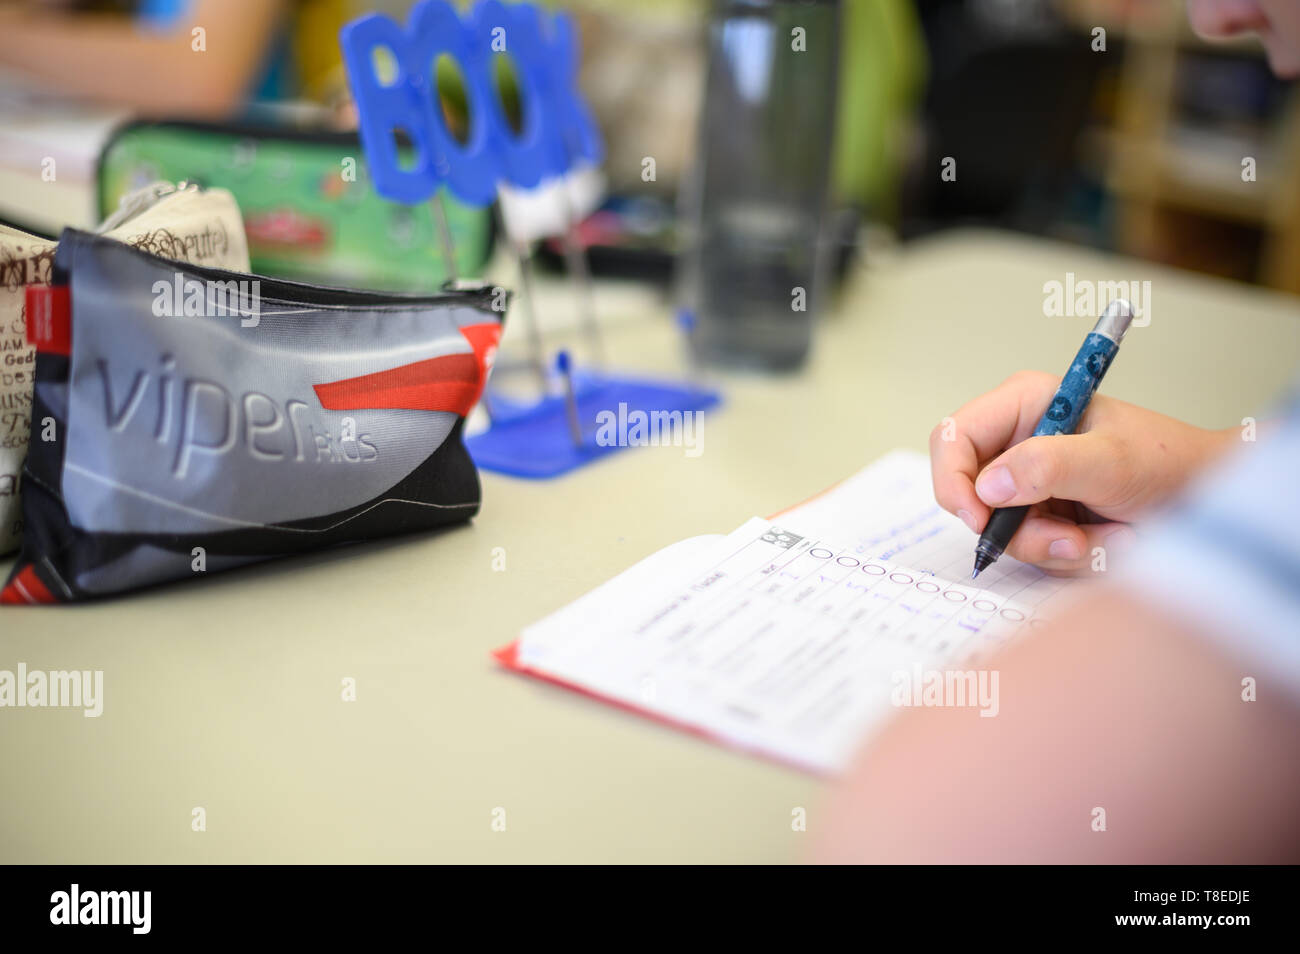 Remshalden, Germany. 13th May, 2019. A student at a primary school writes words in her notebook. Together with Schleswig-Holstein and Hamburg, Baden-Württemberg's Minister of Education, Eisenmann, would like to focus more on spelling in schools. Credit: Sebastian Gollnow/dpa/Alamy Live News - Stock Image